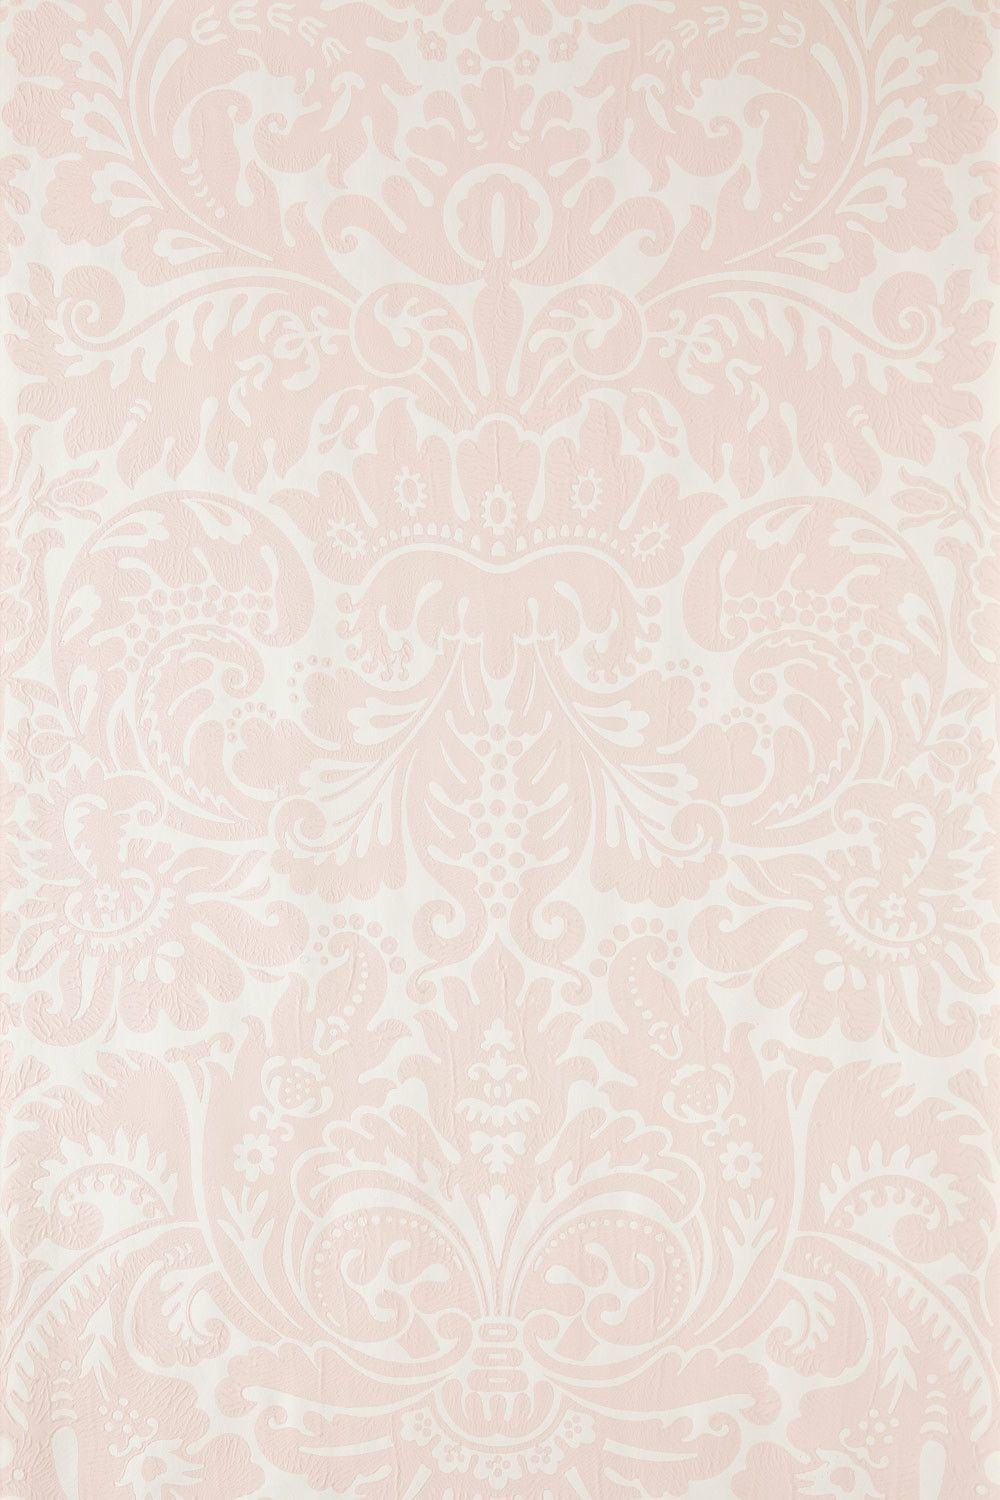 Silvergate Pale pink wallpaper, Pink damask wallpaper